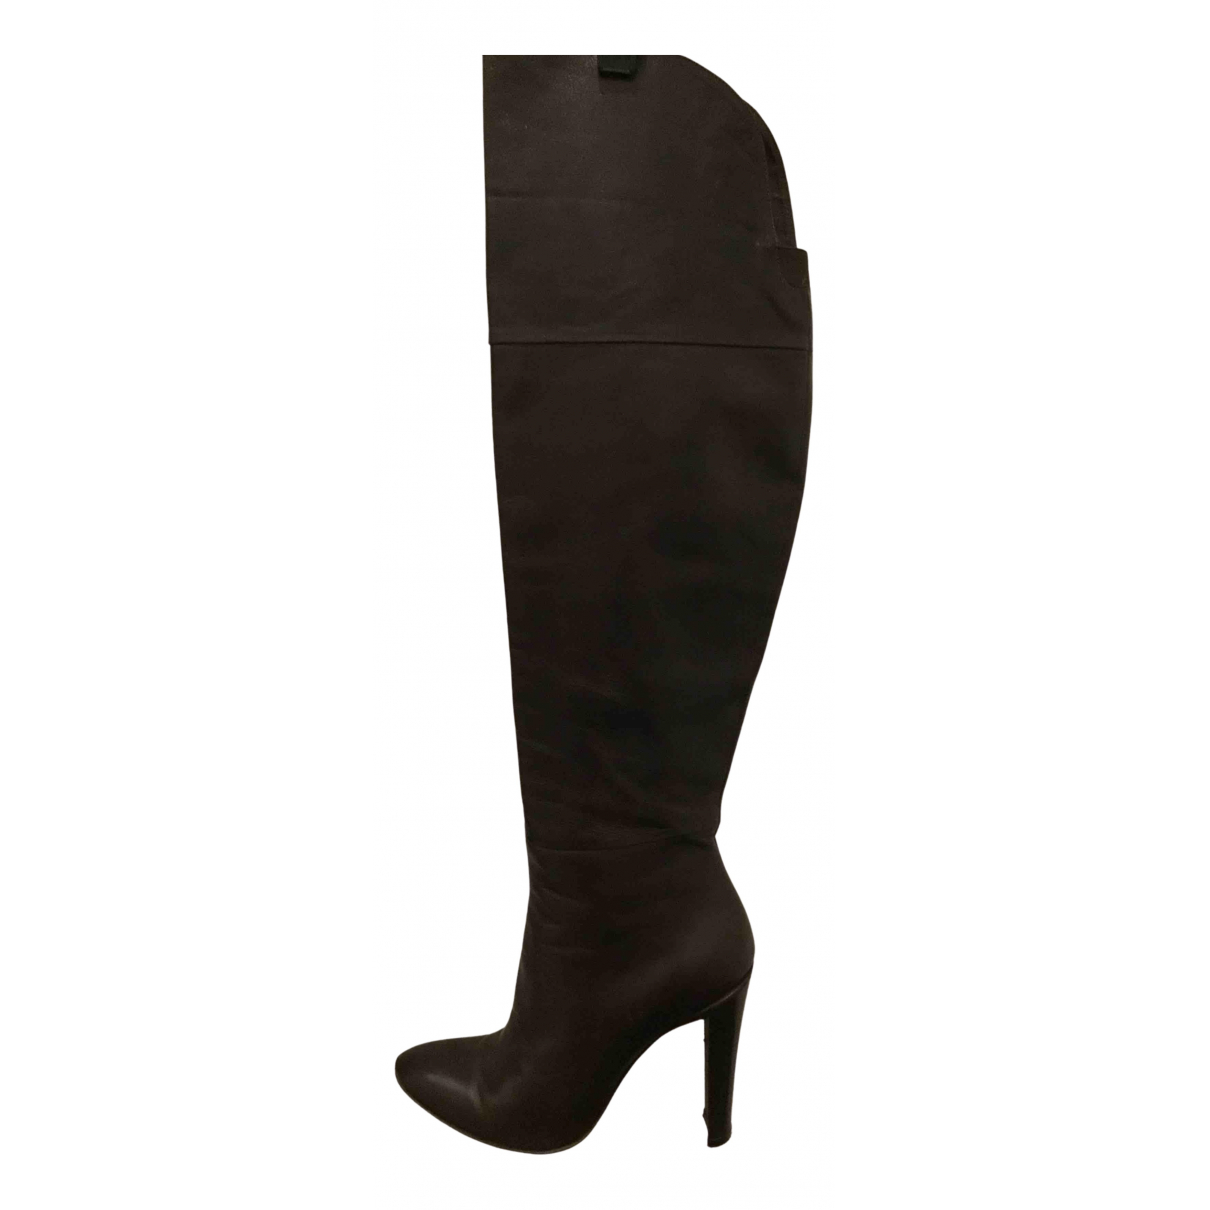 Luca Valentini N Brown Leather Boots for Women 37 IT